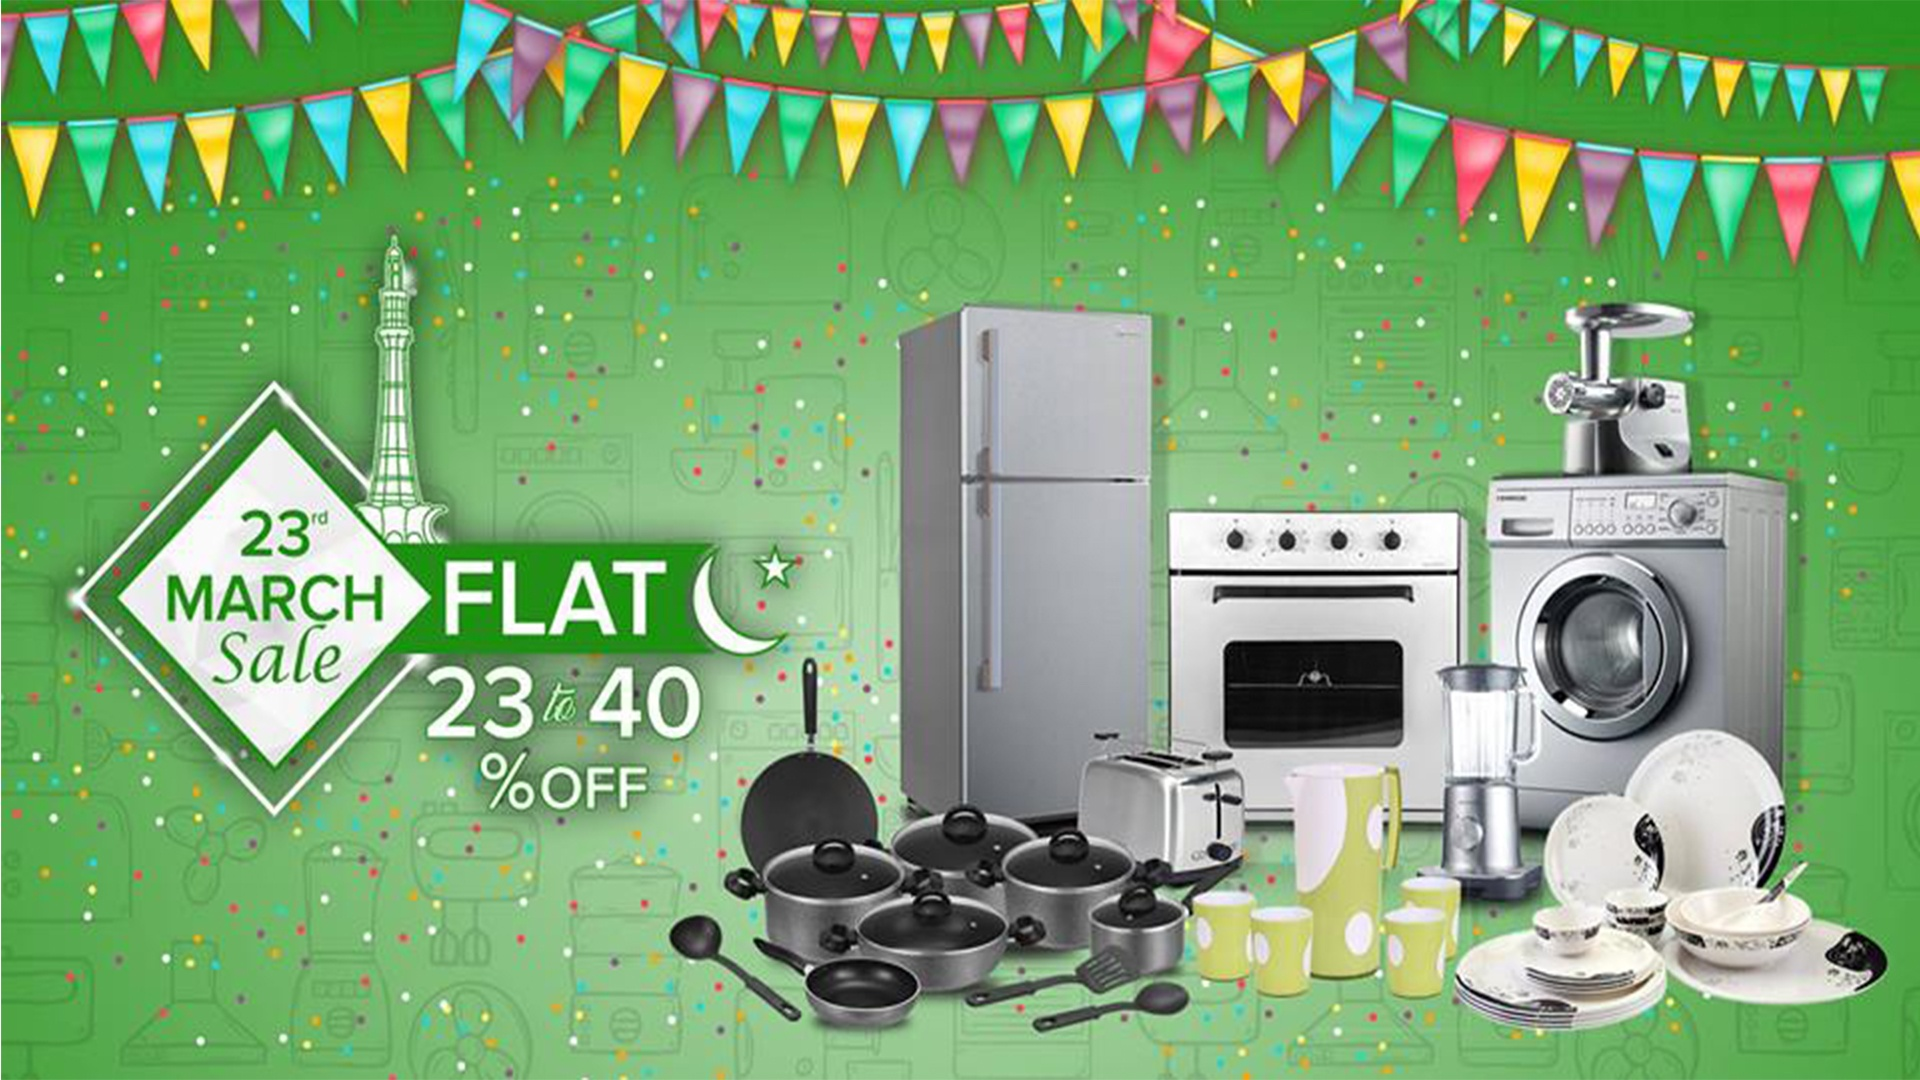 23rd March Sale- 23% to 40% OFF on Electronics & Crockery